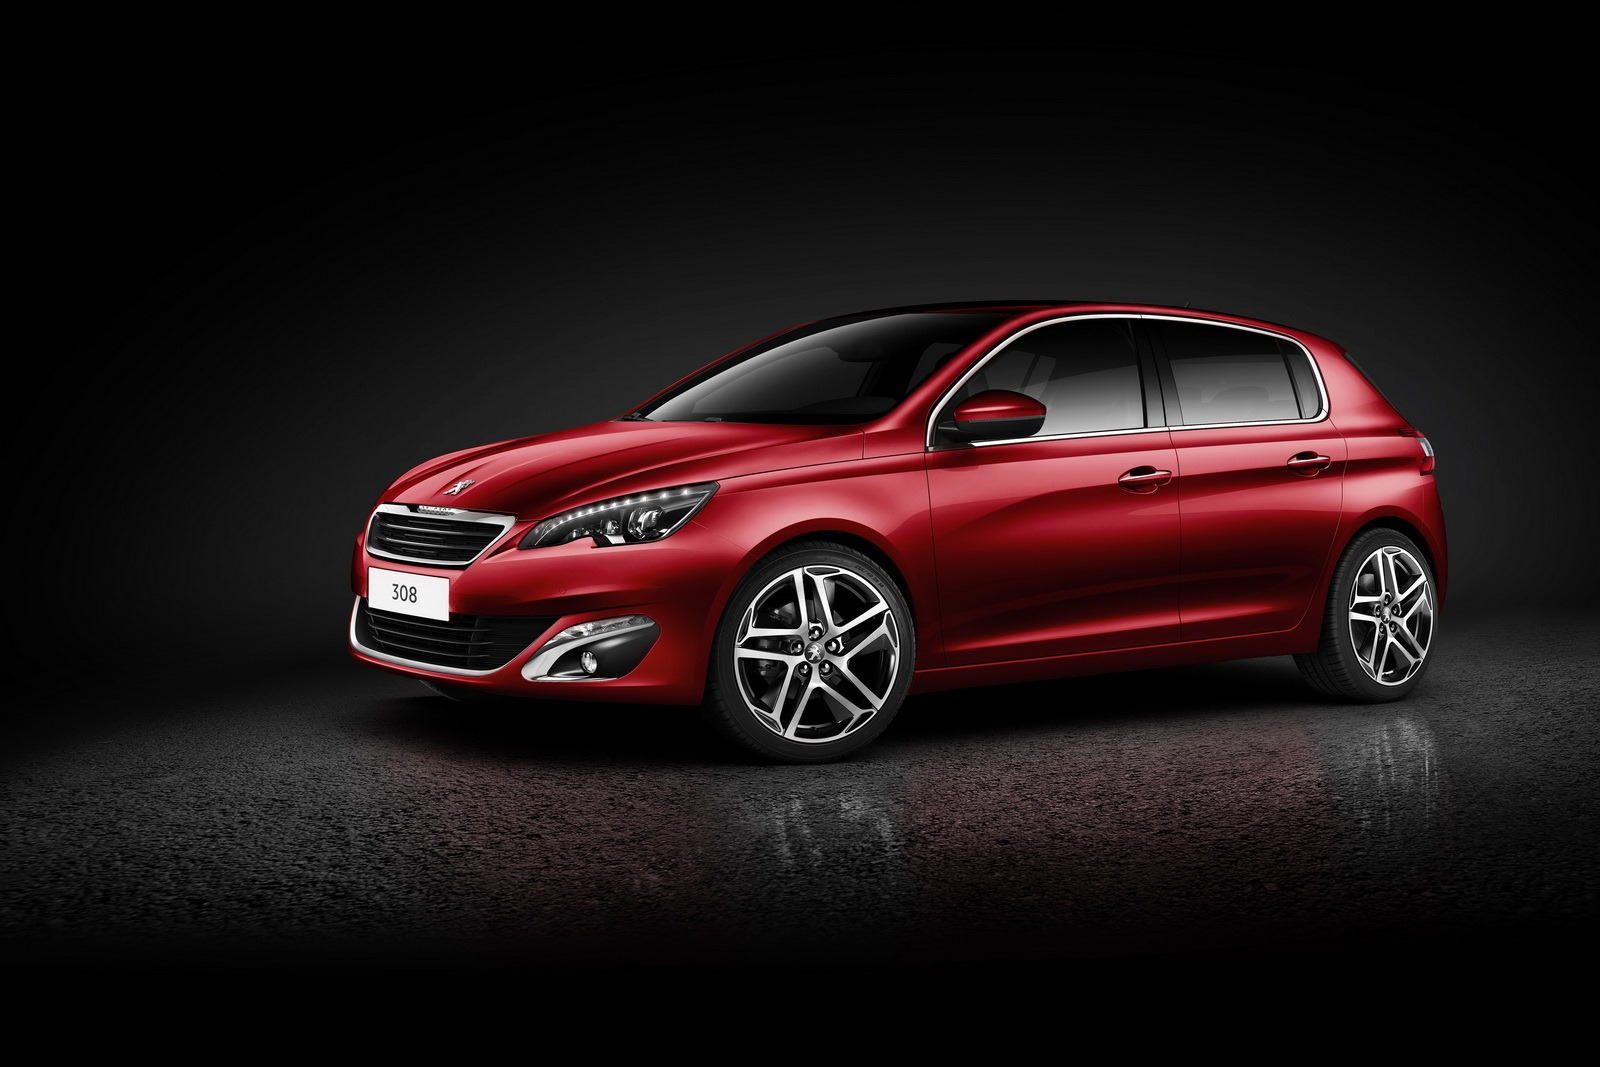 New Peugeot 308 Is the 2014 European Car of the Year - autoevolution